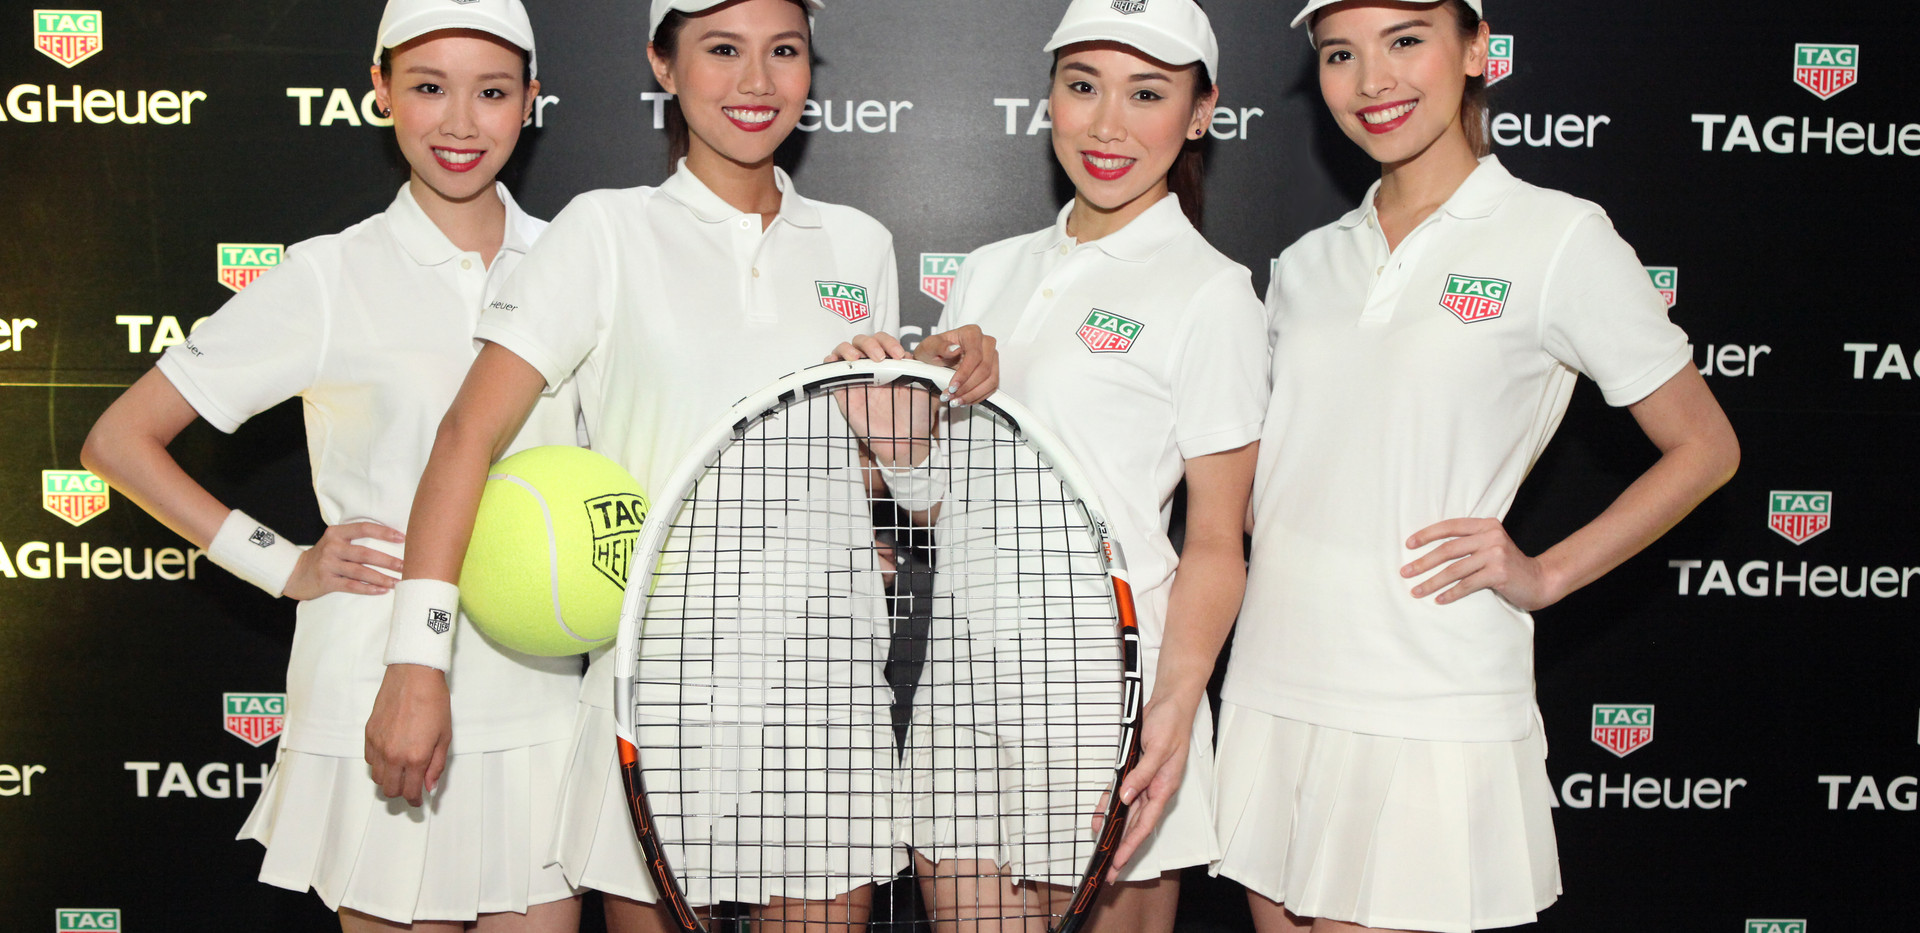 TAG Heuer WTA Event